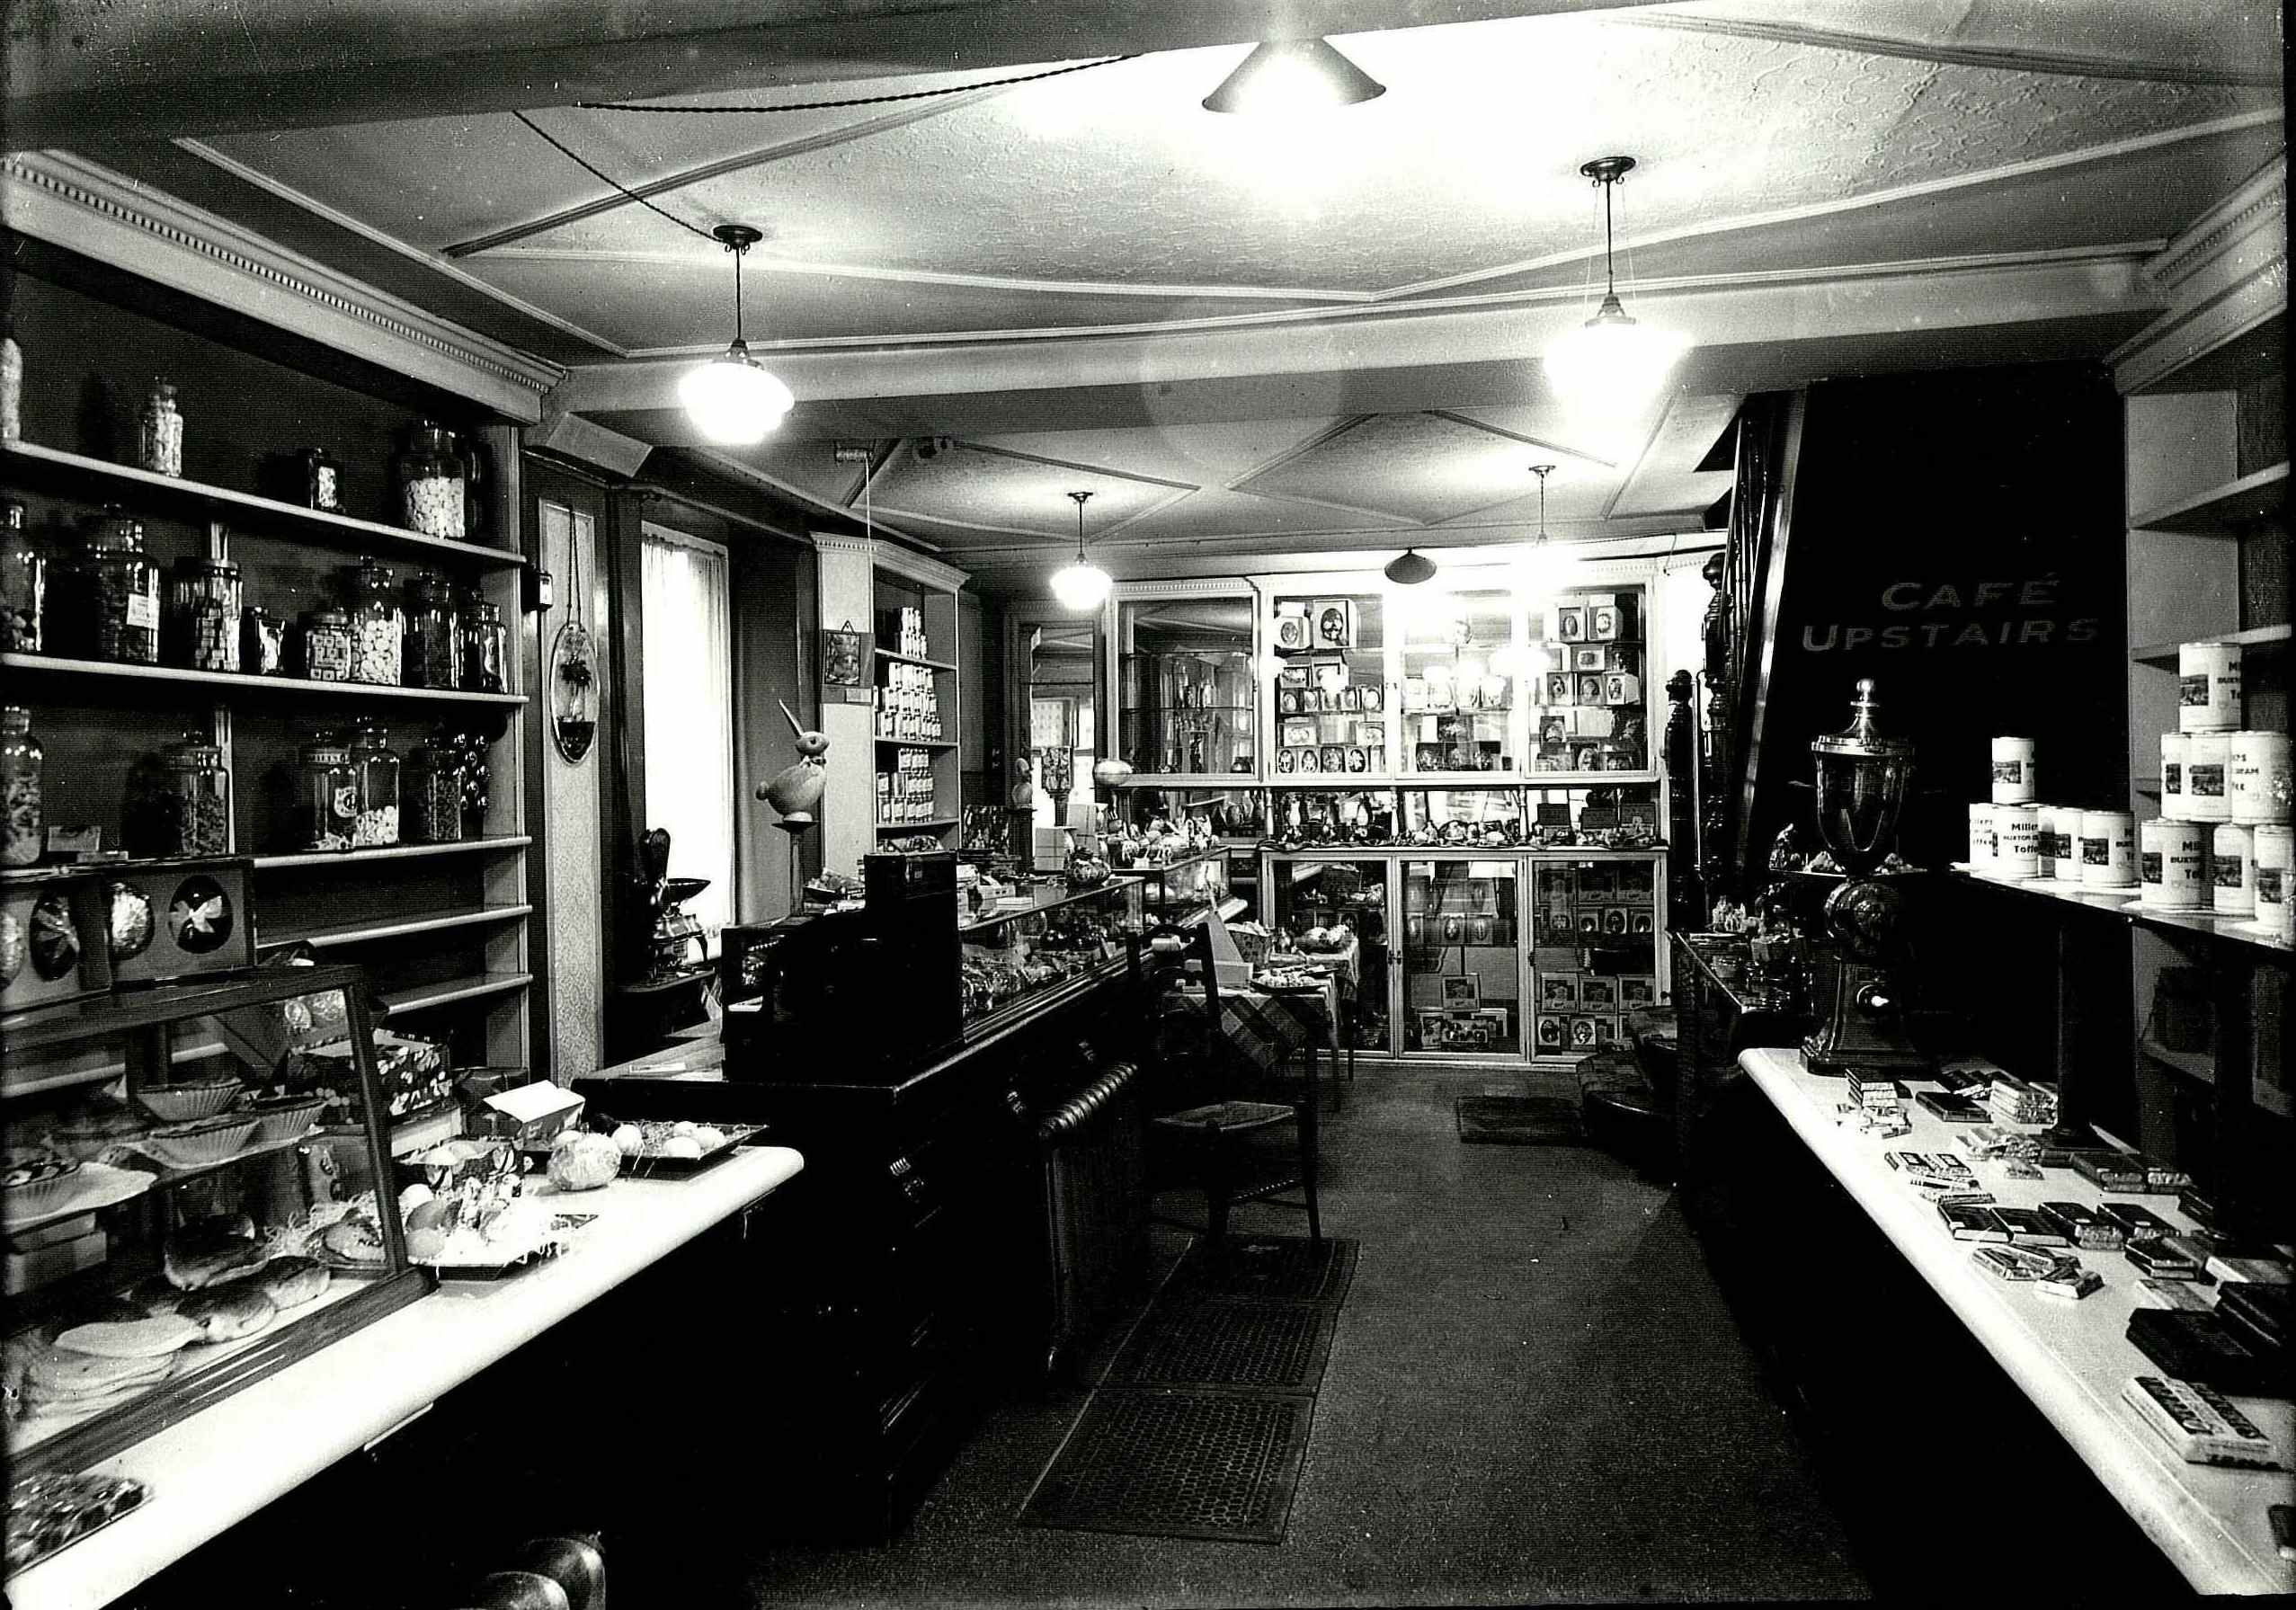 Interior of Millers Cafe, Buxton, 28.2.1938